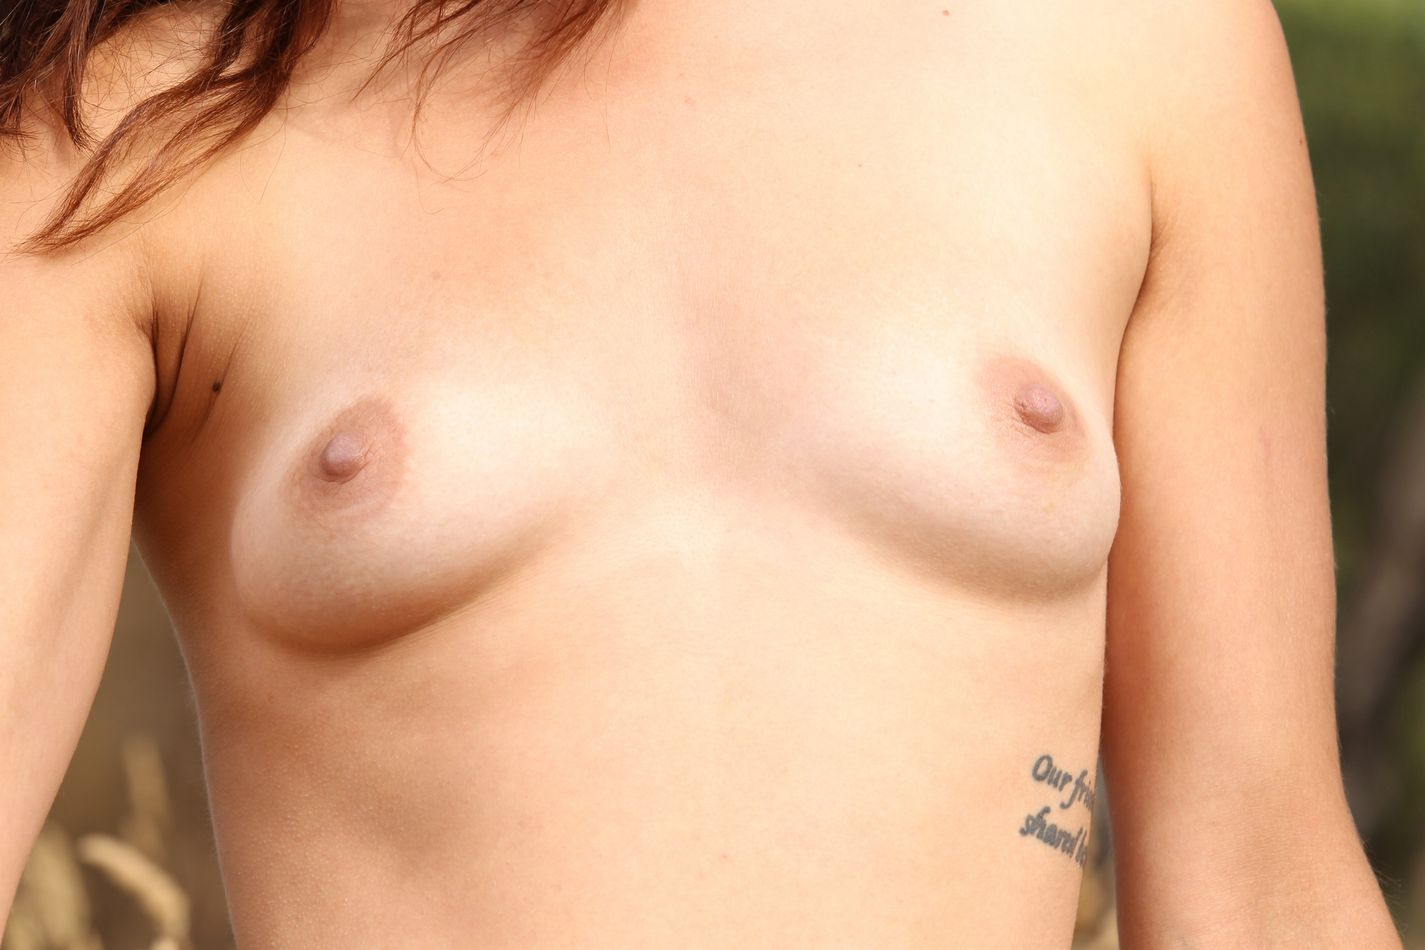 come and take a roll in the long grass totally naked as she fucks herself with a large sex toy-3